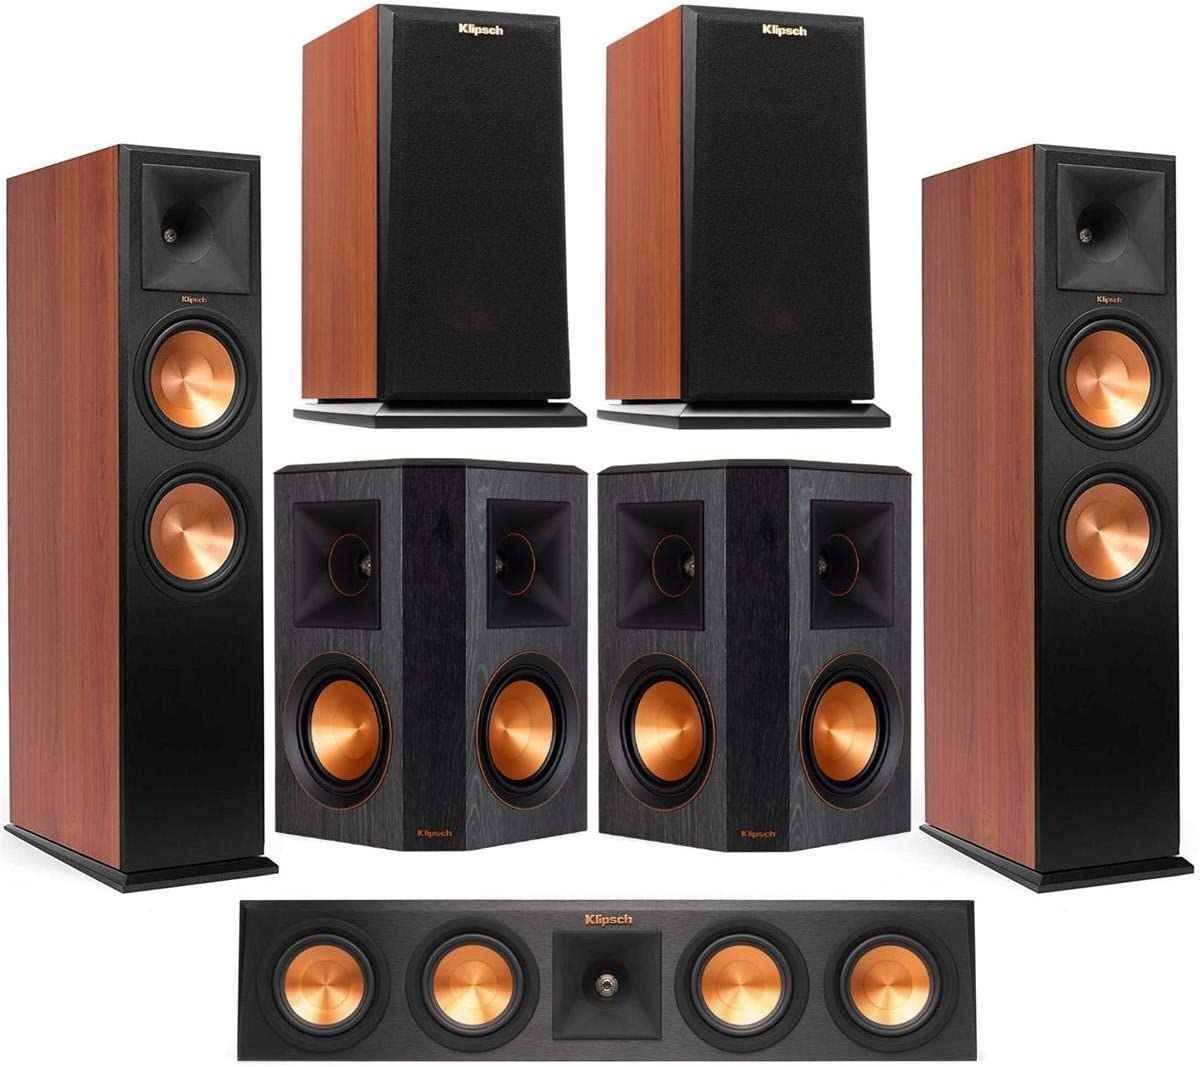 Klipsch 2 Pack Premiere RP-280FA Dolby Atmos Front Speaker (Cherry Vinyl - Bundle With RP-440C 2-Way Center Speaker Cherry, RP-150M 2-Way Bookshelf Speaker,Pair Cherry, RP-502S Surround Speakers, Pair